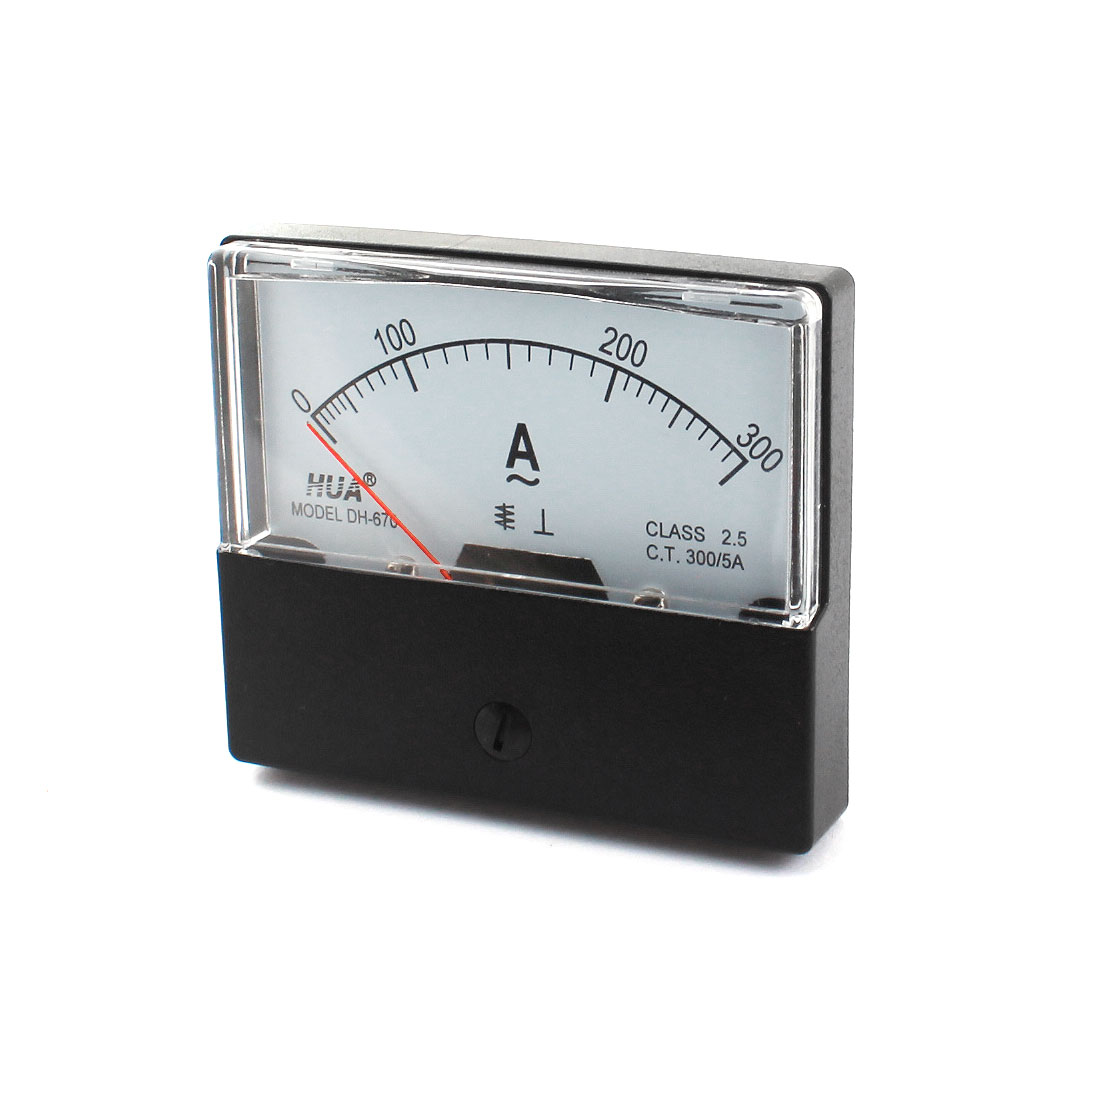 AC 300A Class 2.5 Analog Current Panel Meter Ammeter Gauge